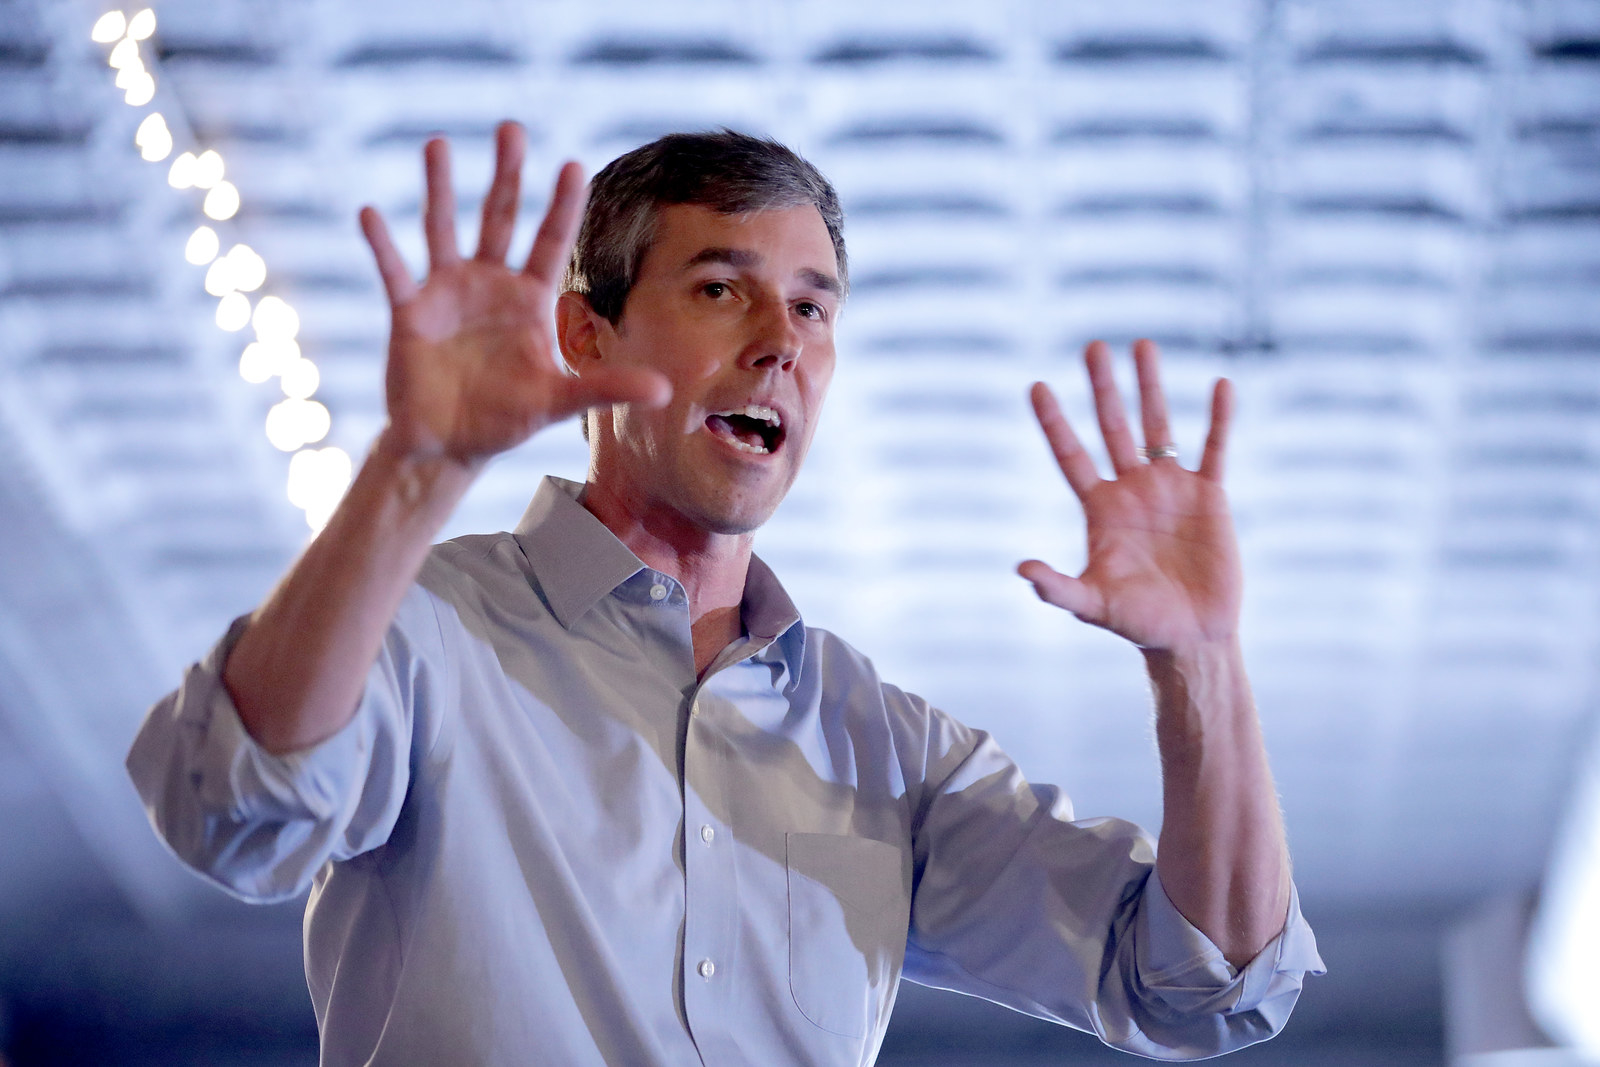 Beto O'Rourke's Young Hacker Days Are A Preview Of Millennial Politicians' Teen Internet Days